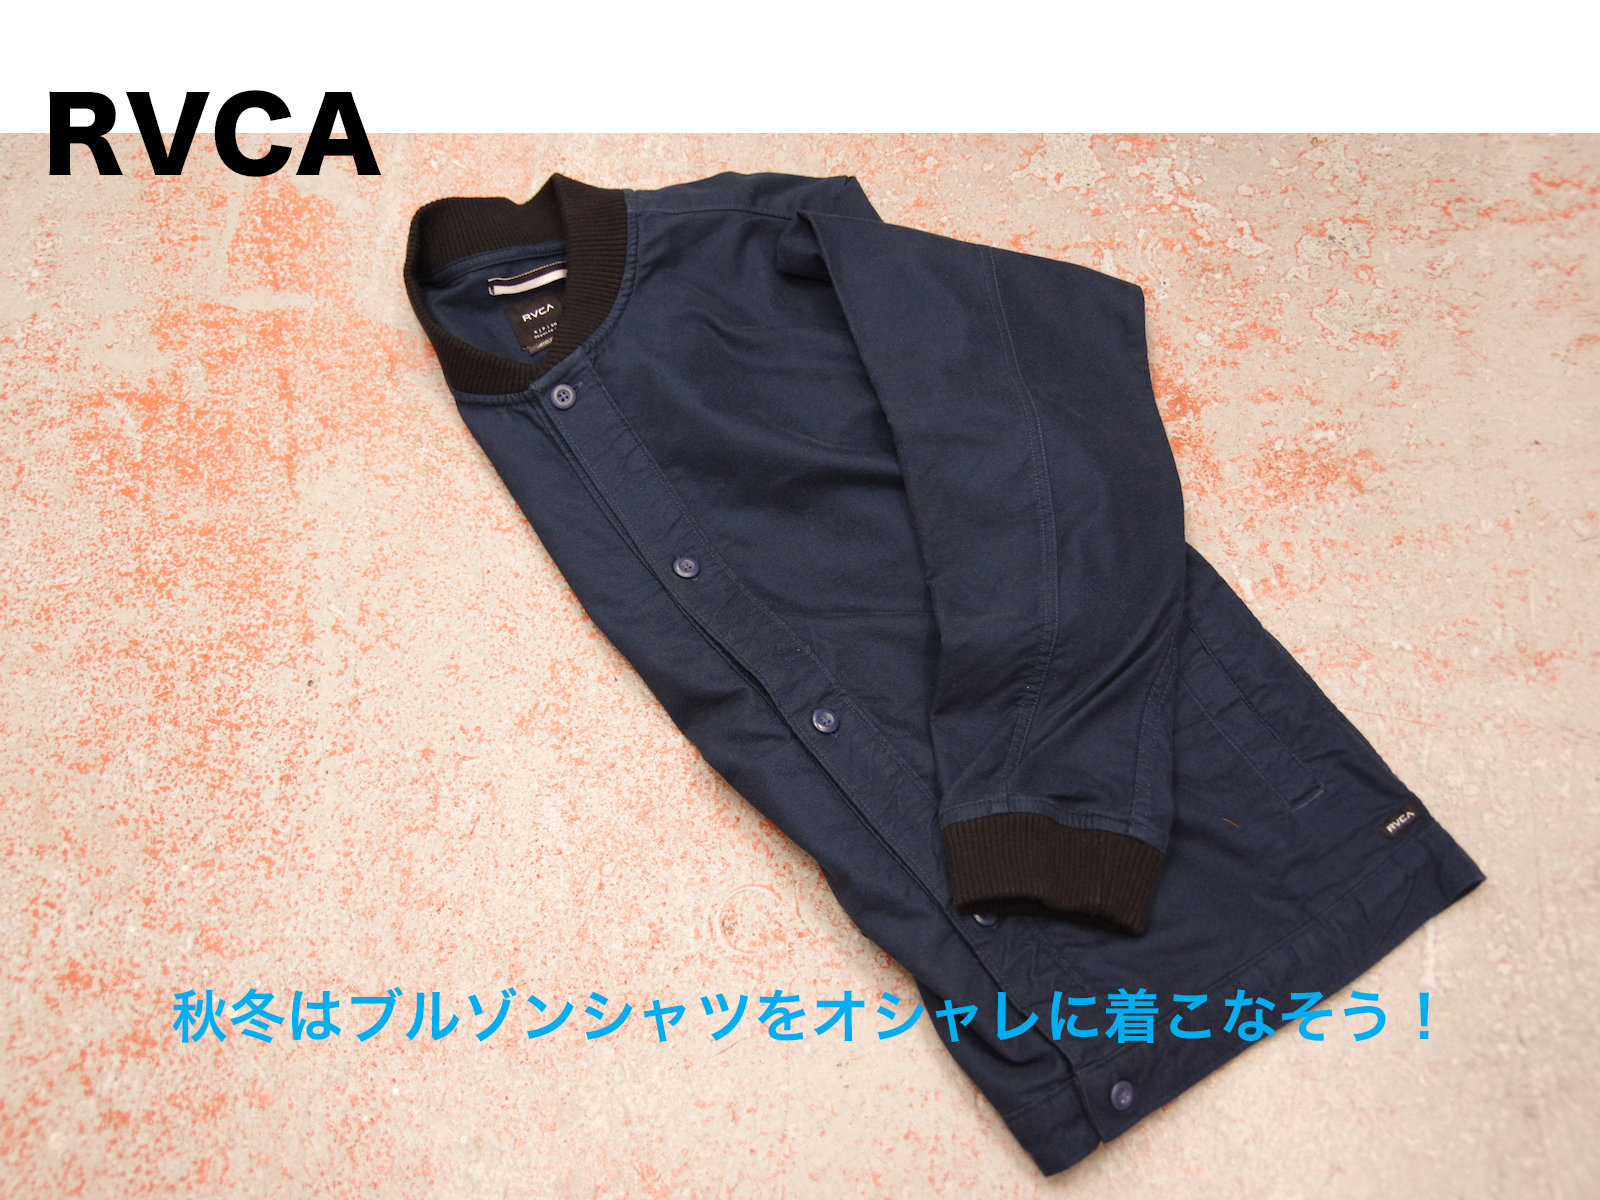 PICK UP ITEM : RVCA – CONVERSION BLOUSON